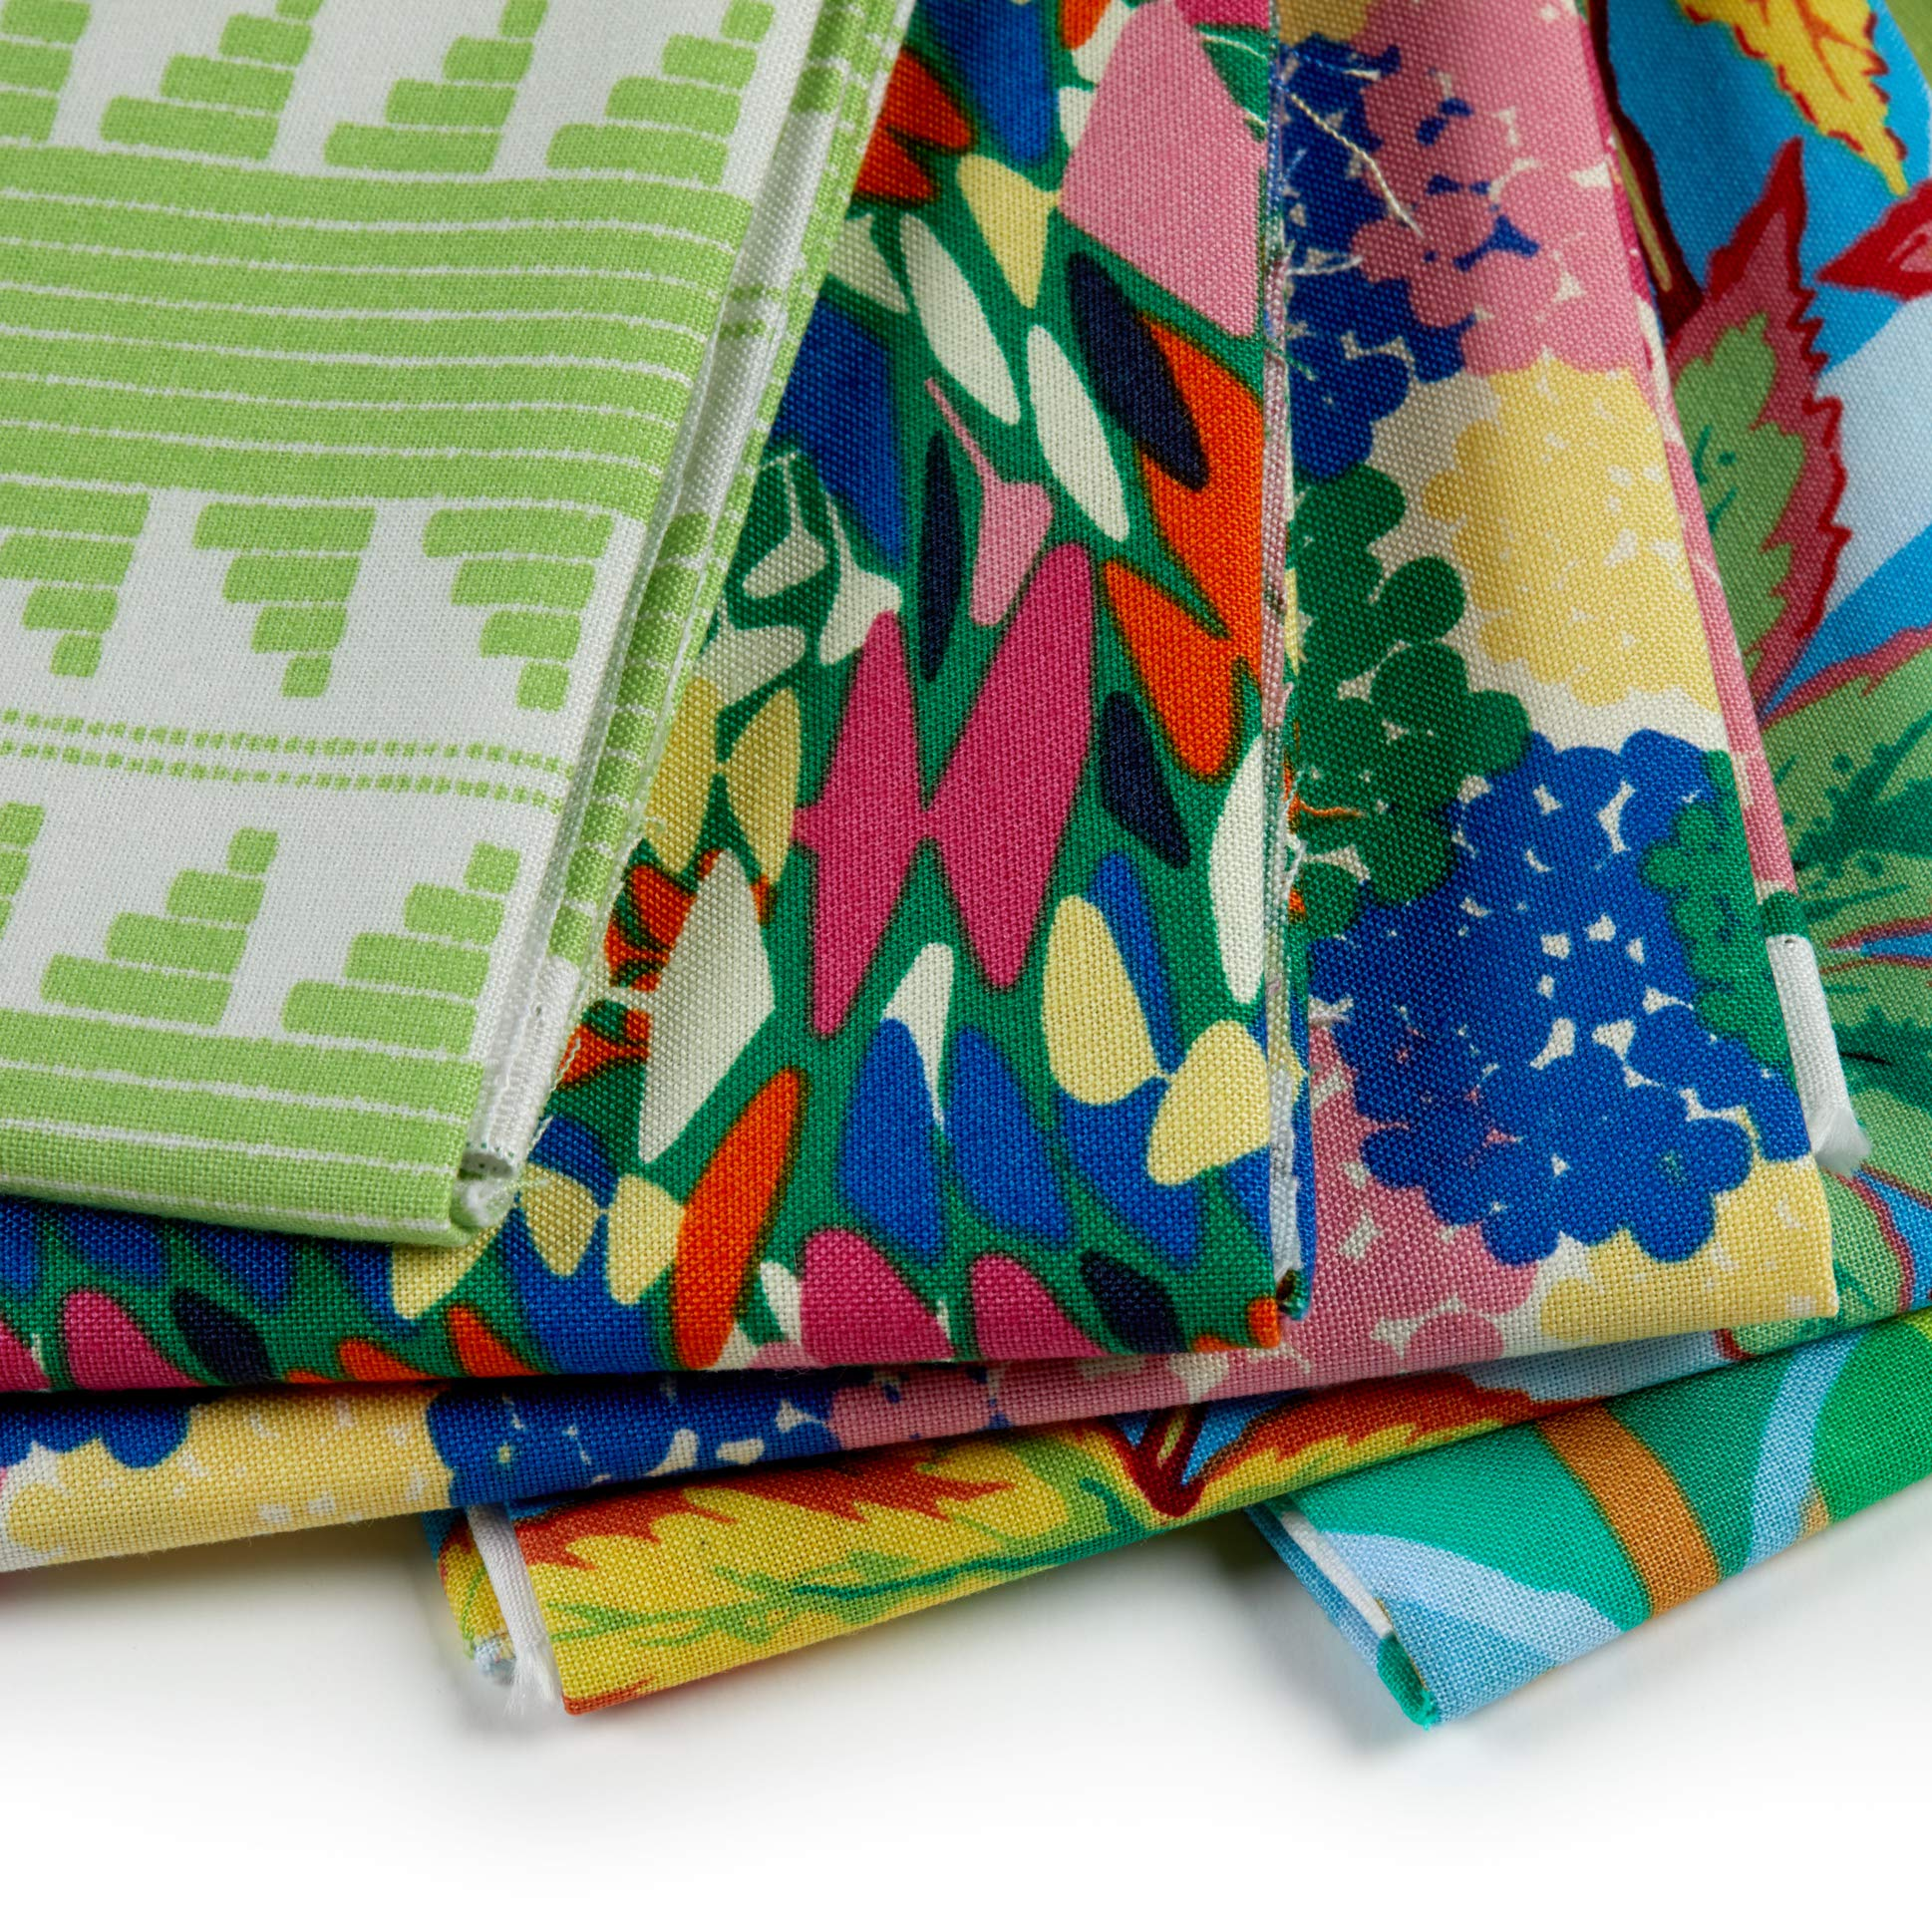 FreeSpirit Fabrics 50 Piece Designer Fat Quarter Fabric, Multicolor by Free Spirit Fabrics (Image #5)